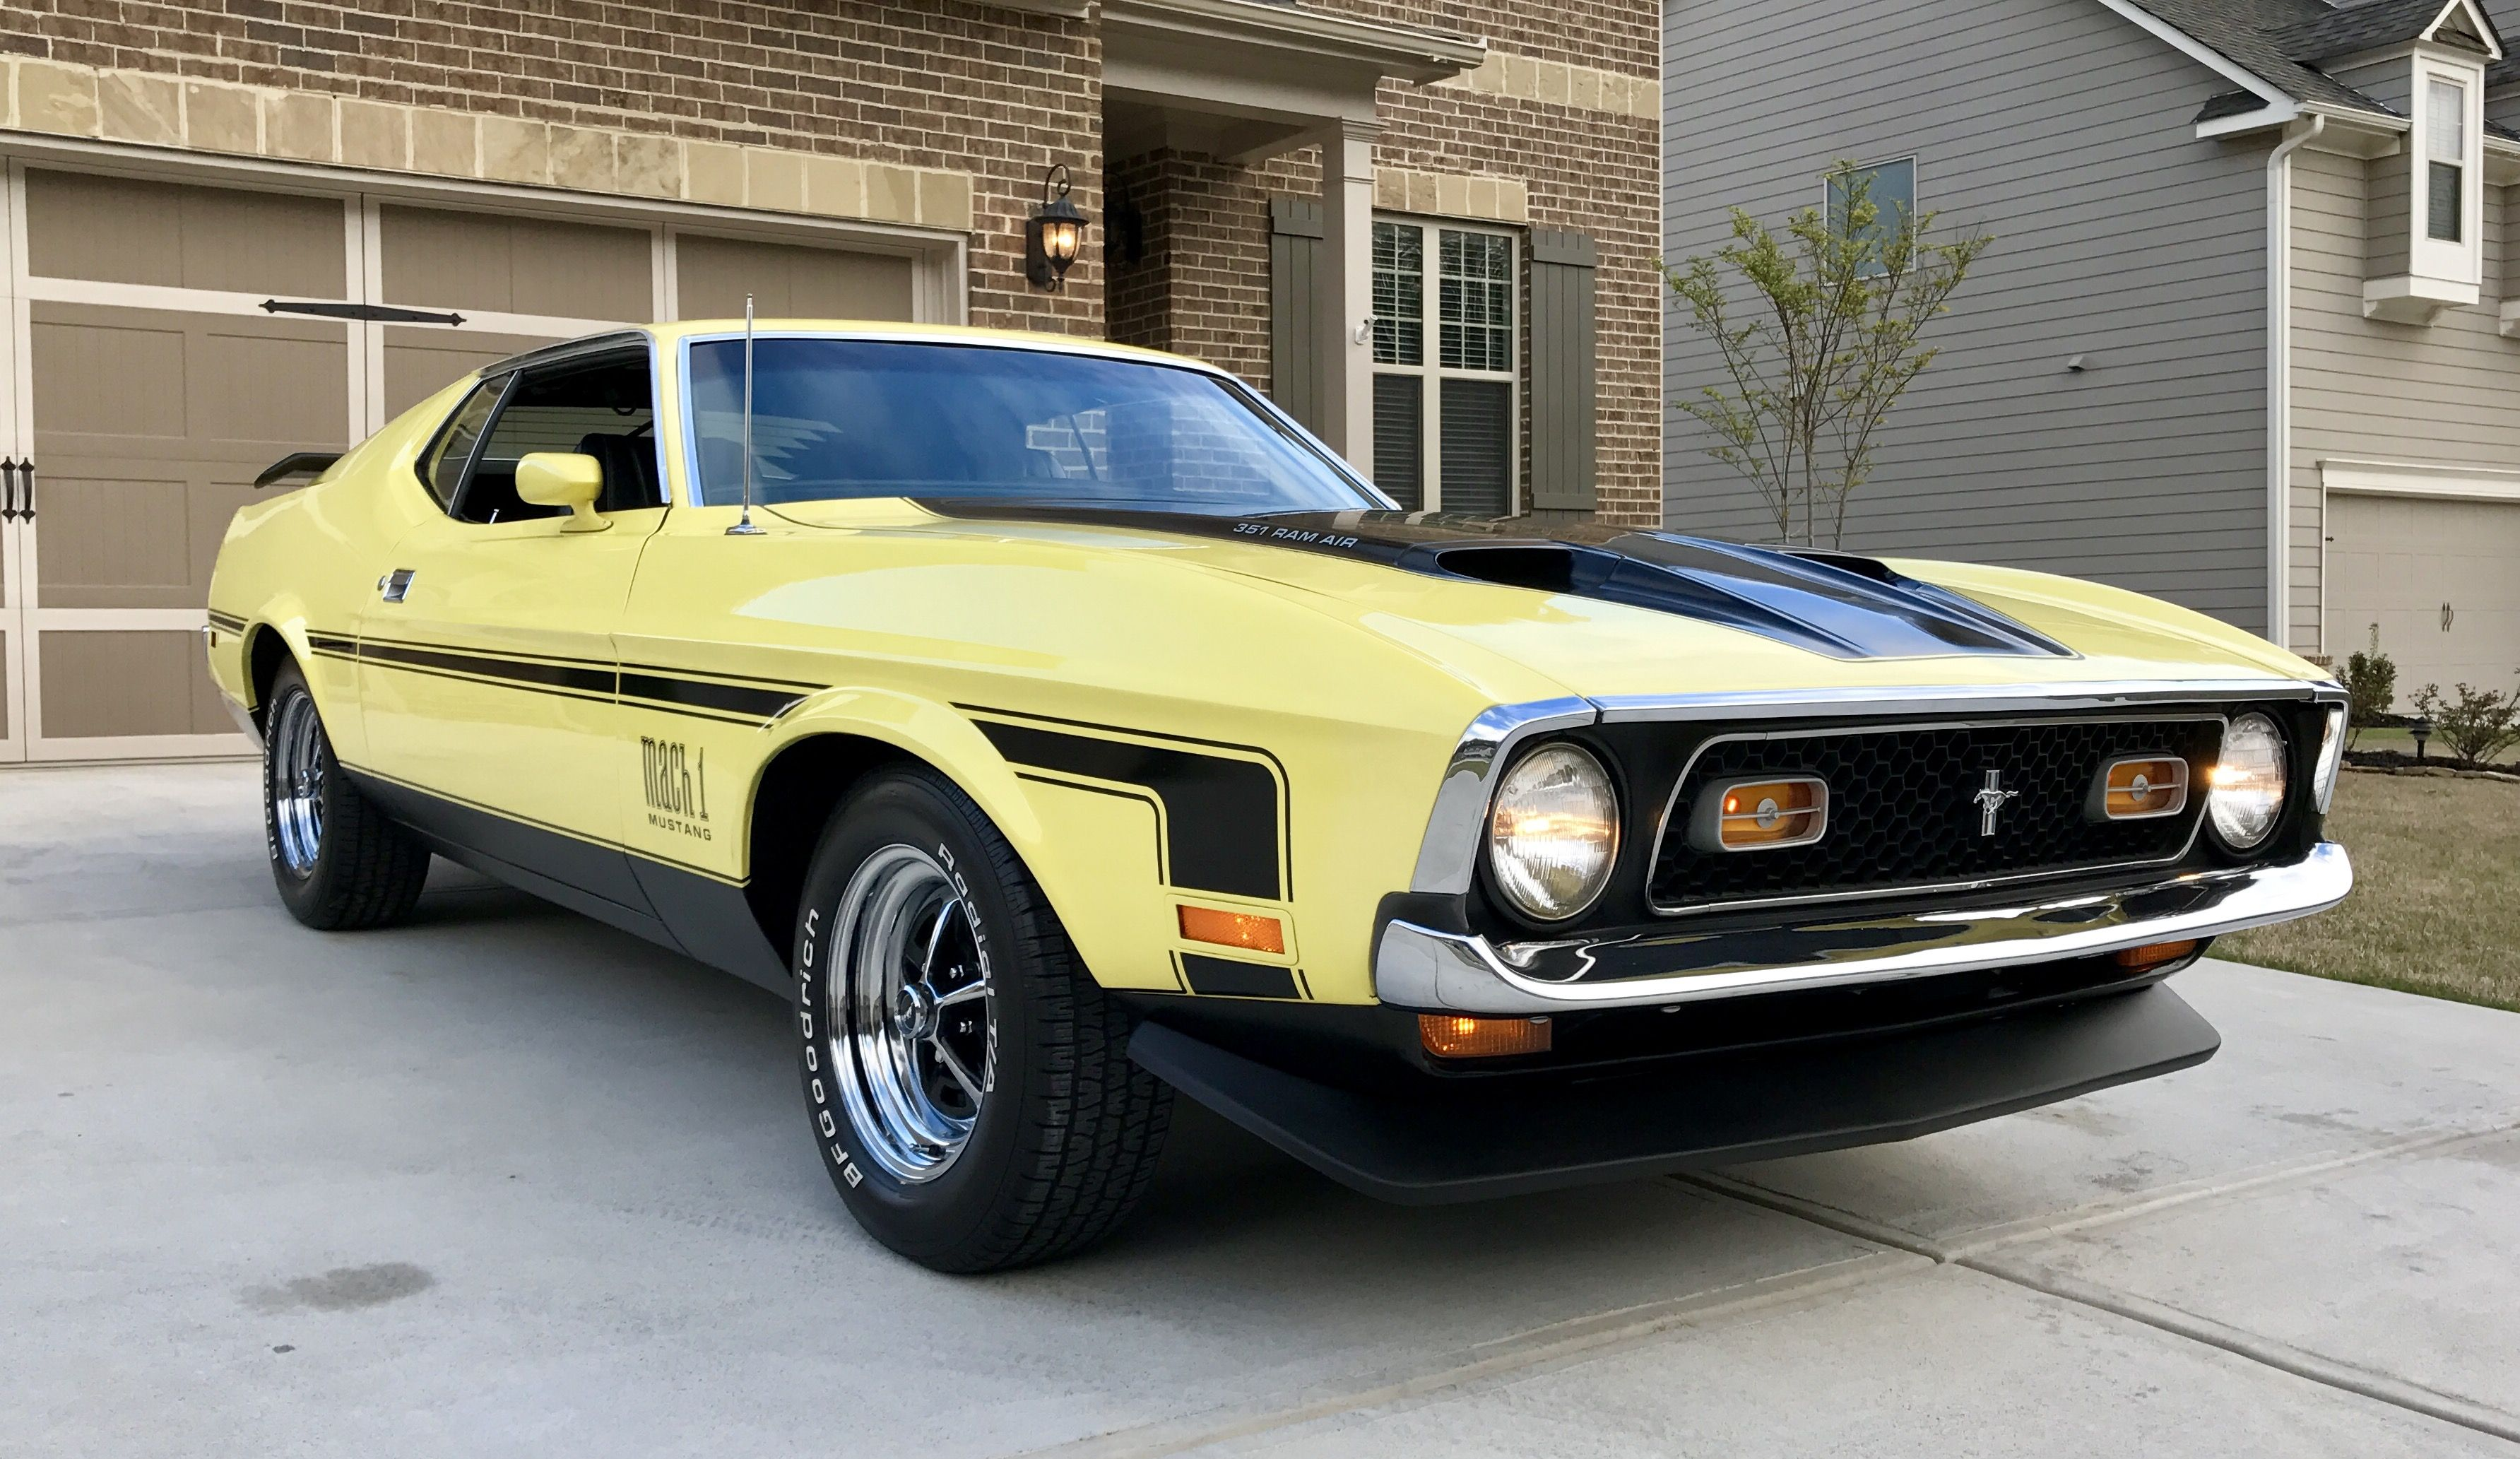 1971 Ford Mustang Mach 1 Grabber Yellow 351 Windsor 4bbl 4 Speed Manual Transmission Ram Air Dual Exhaust W Co 1971 Ford Mustang Ford Mustang Mustang